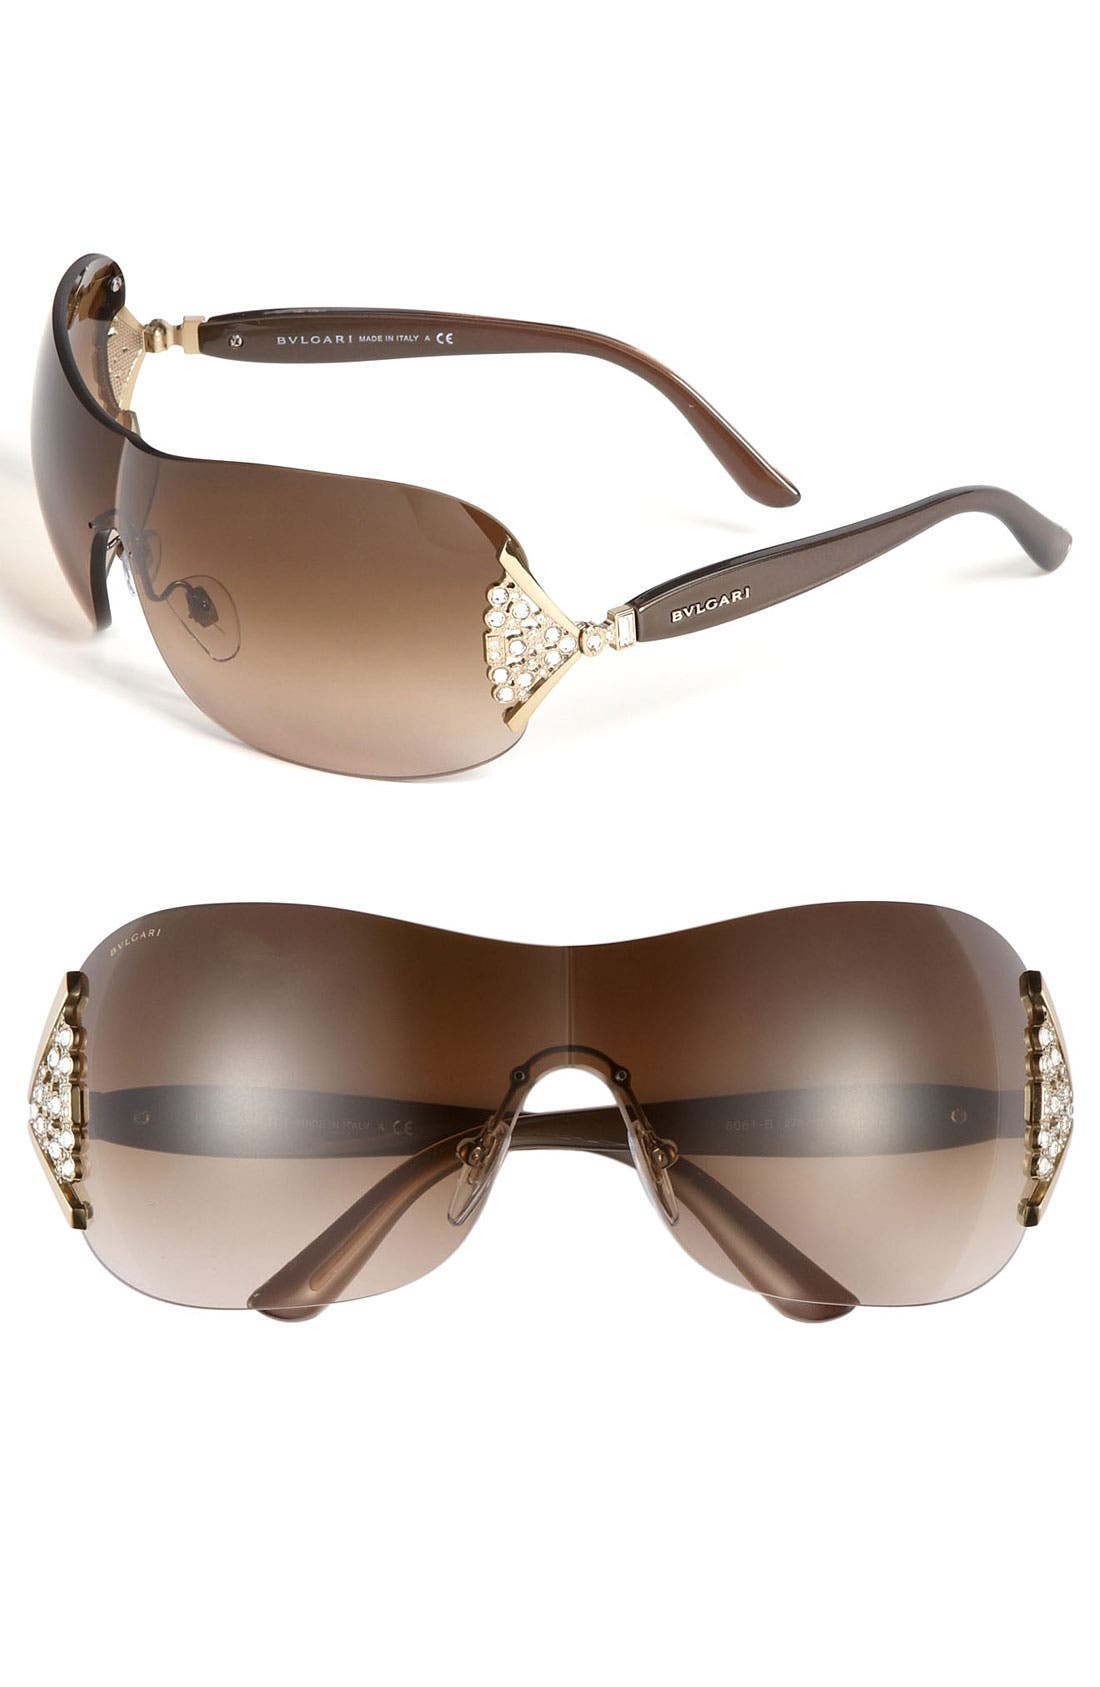 Alternate Image 1 Selected - BVLGARI 63mm Swarovski Crystal Rimless Shield Sunglasses